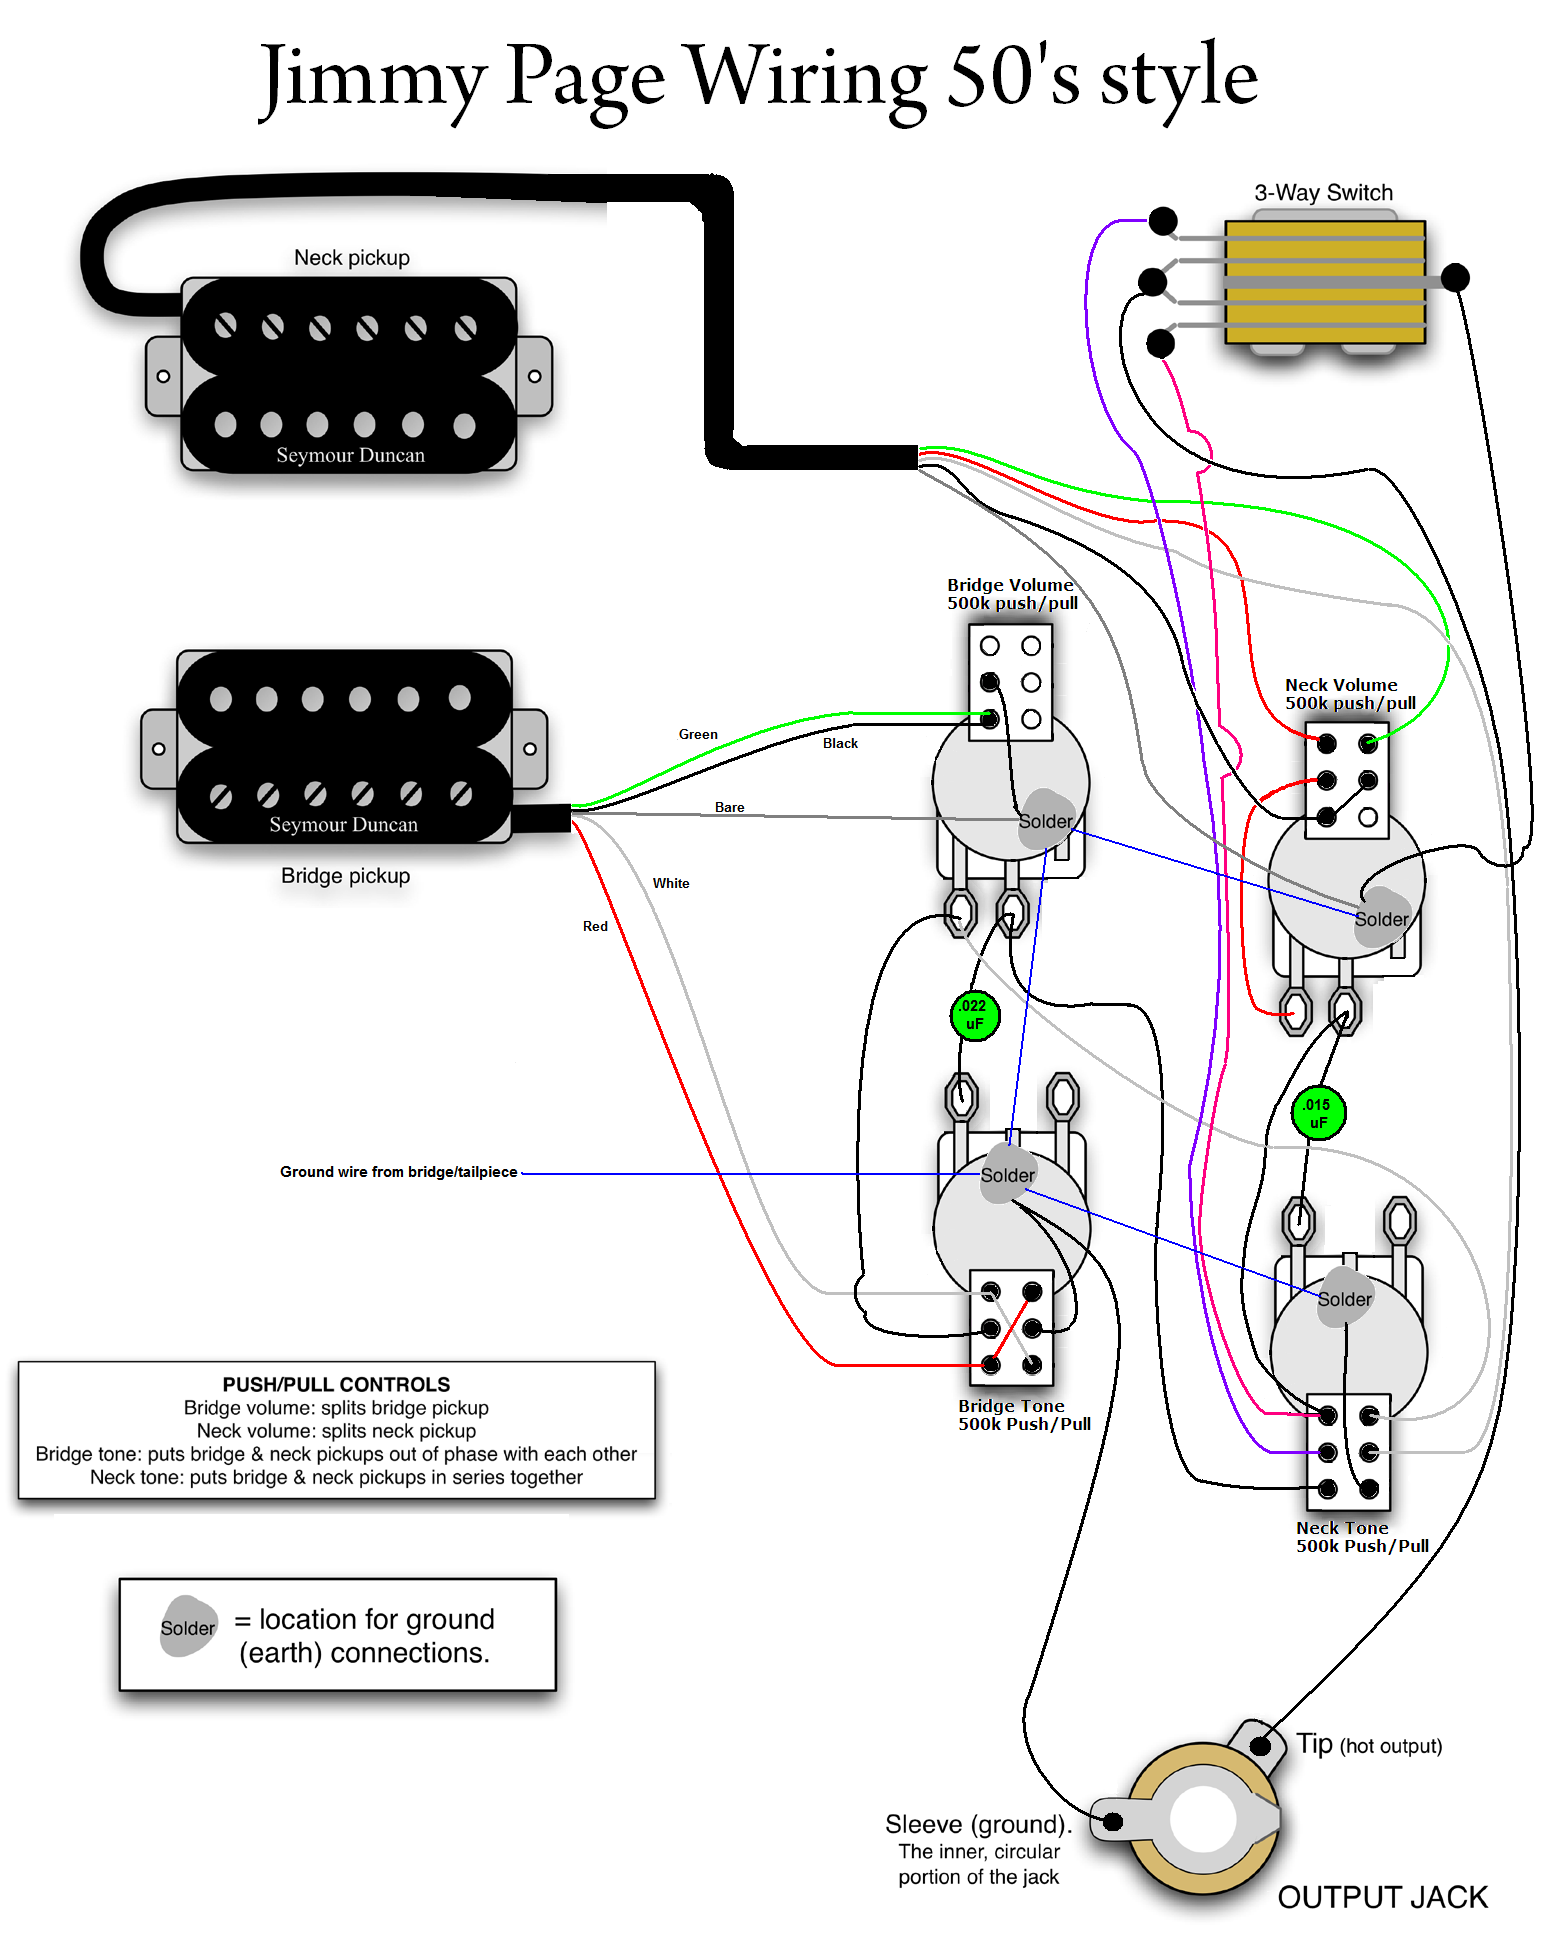 jimmy page wiring schematic wiring diagram z4jimmy page 50s wiring mylespaul com instruments in 2019 guitar jimmy page les paul wiring 2 jimmy page wiring schematic